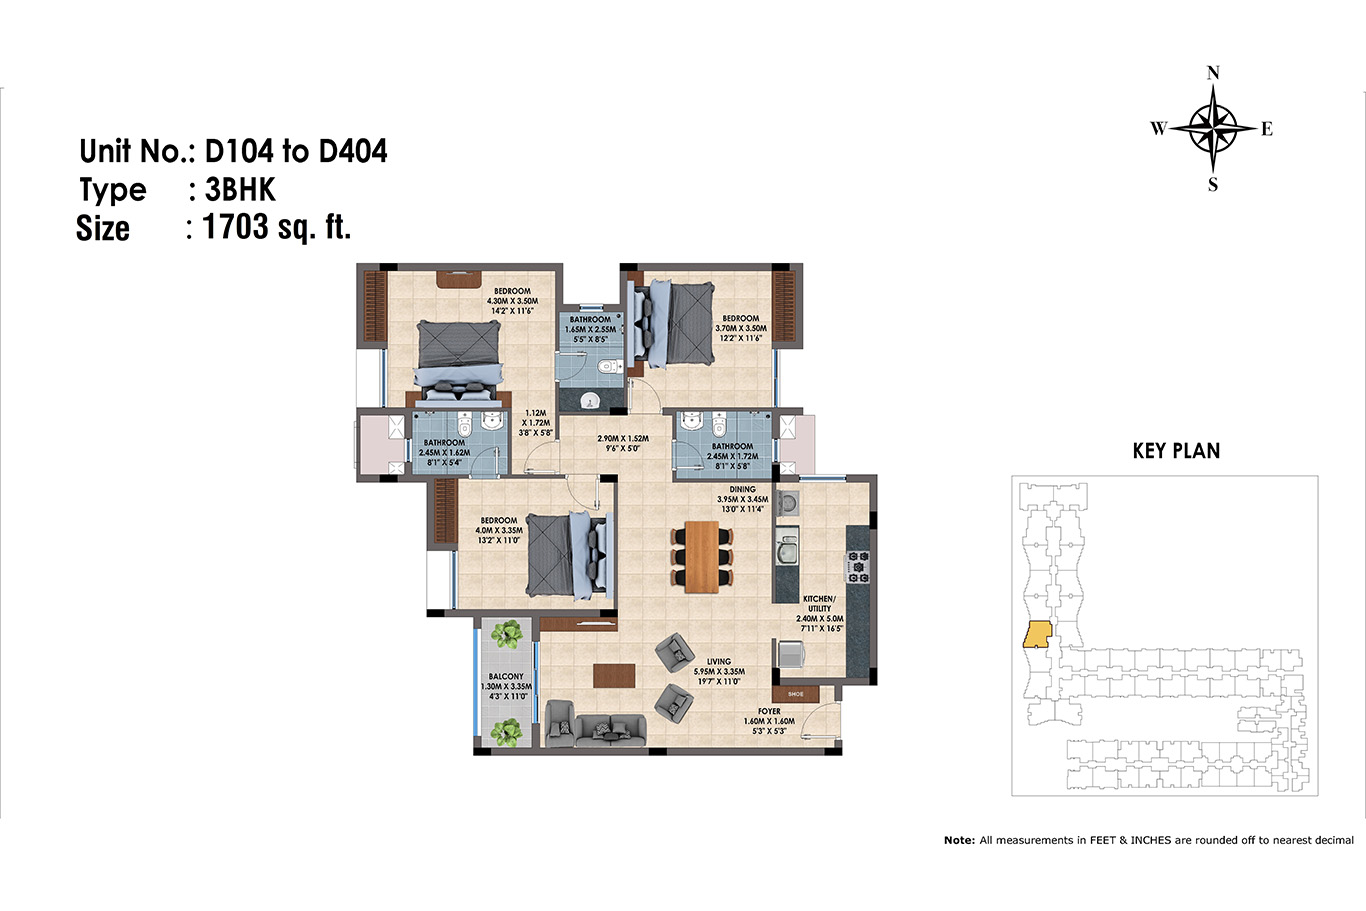 D104 to D404(3BHK)